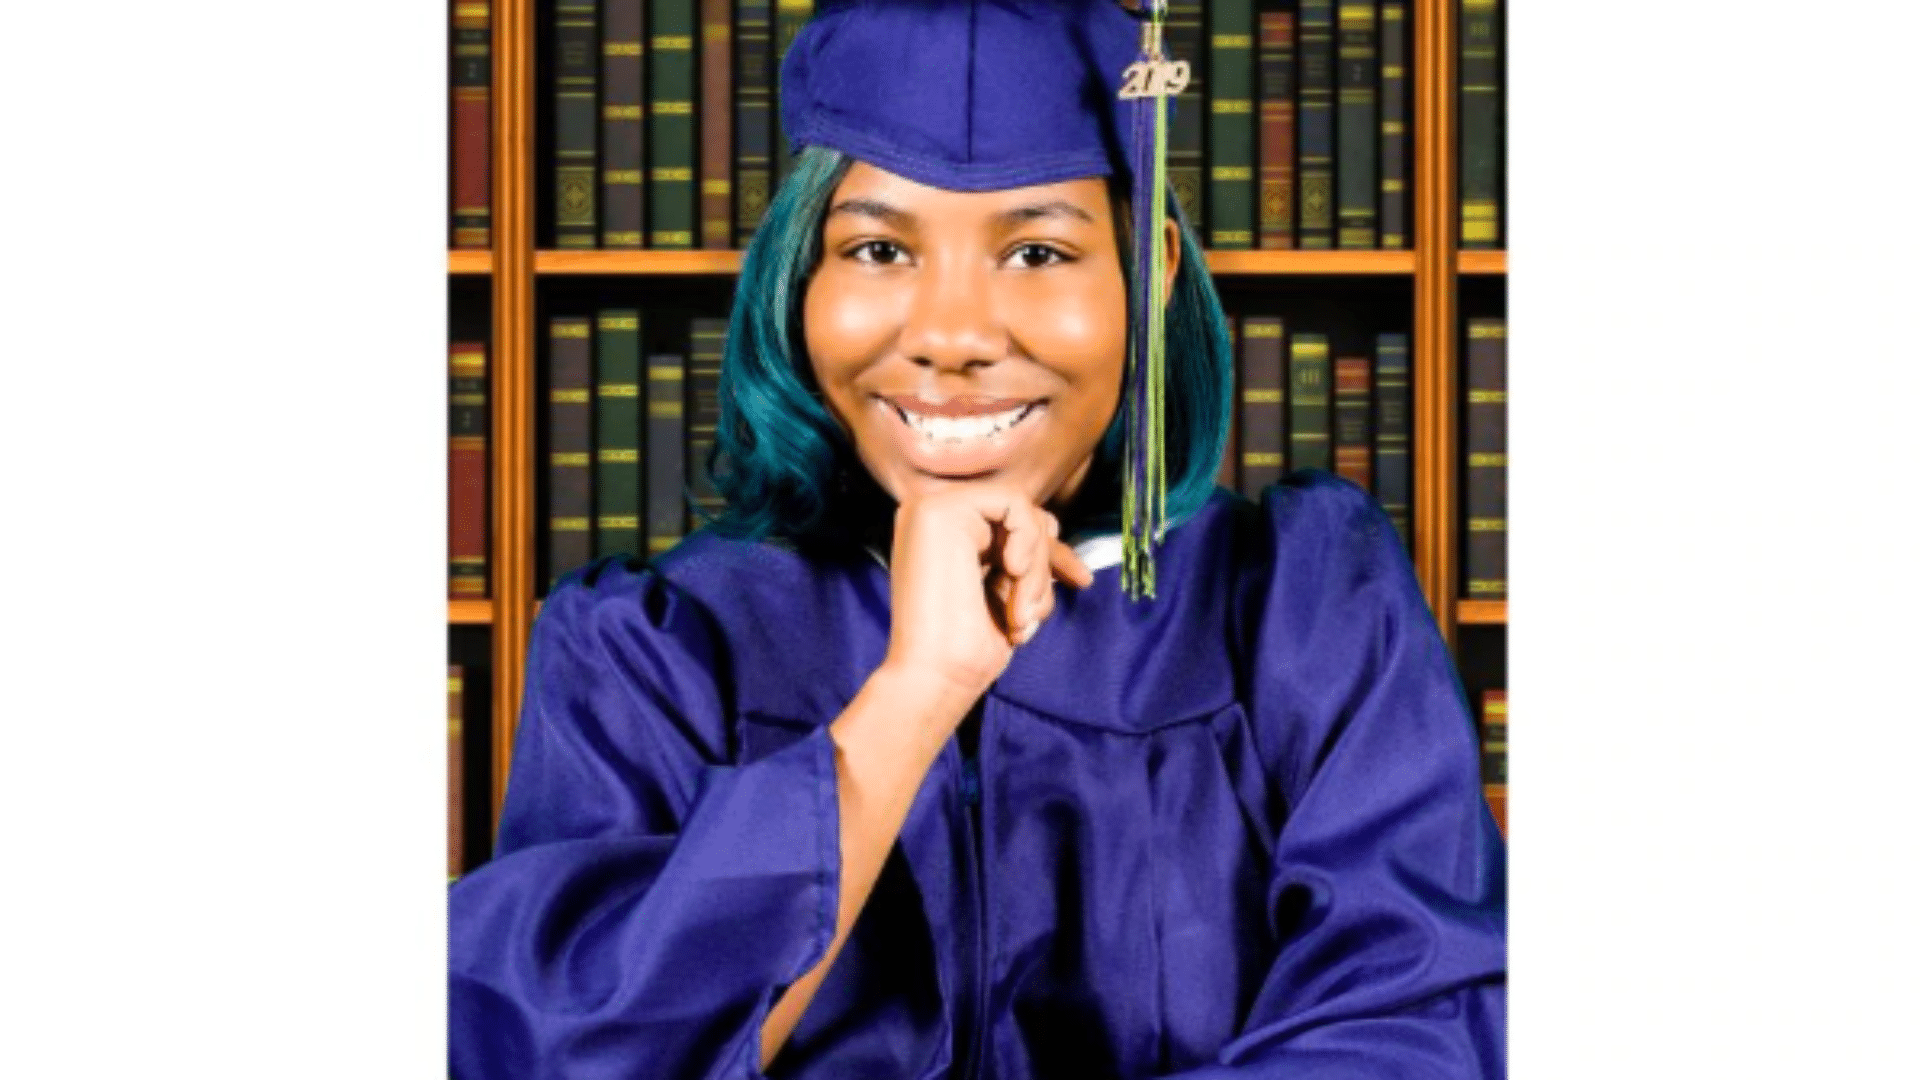 #BlackExcellence: New Orleans Teen Accepted Into 115 Colleges